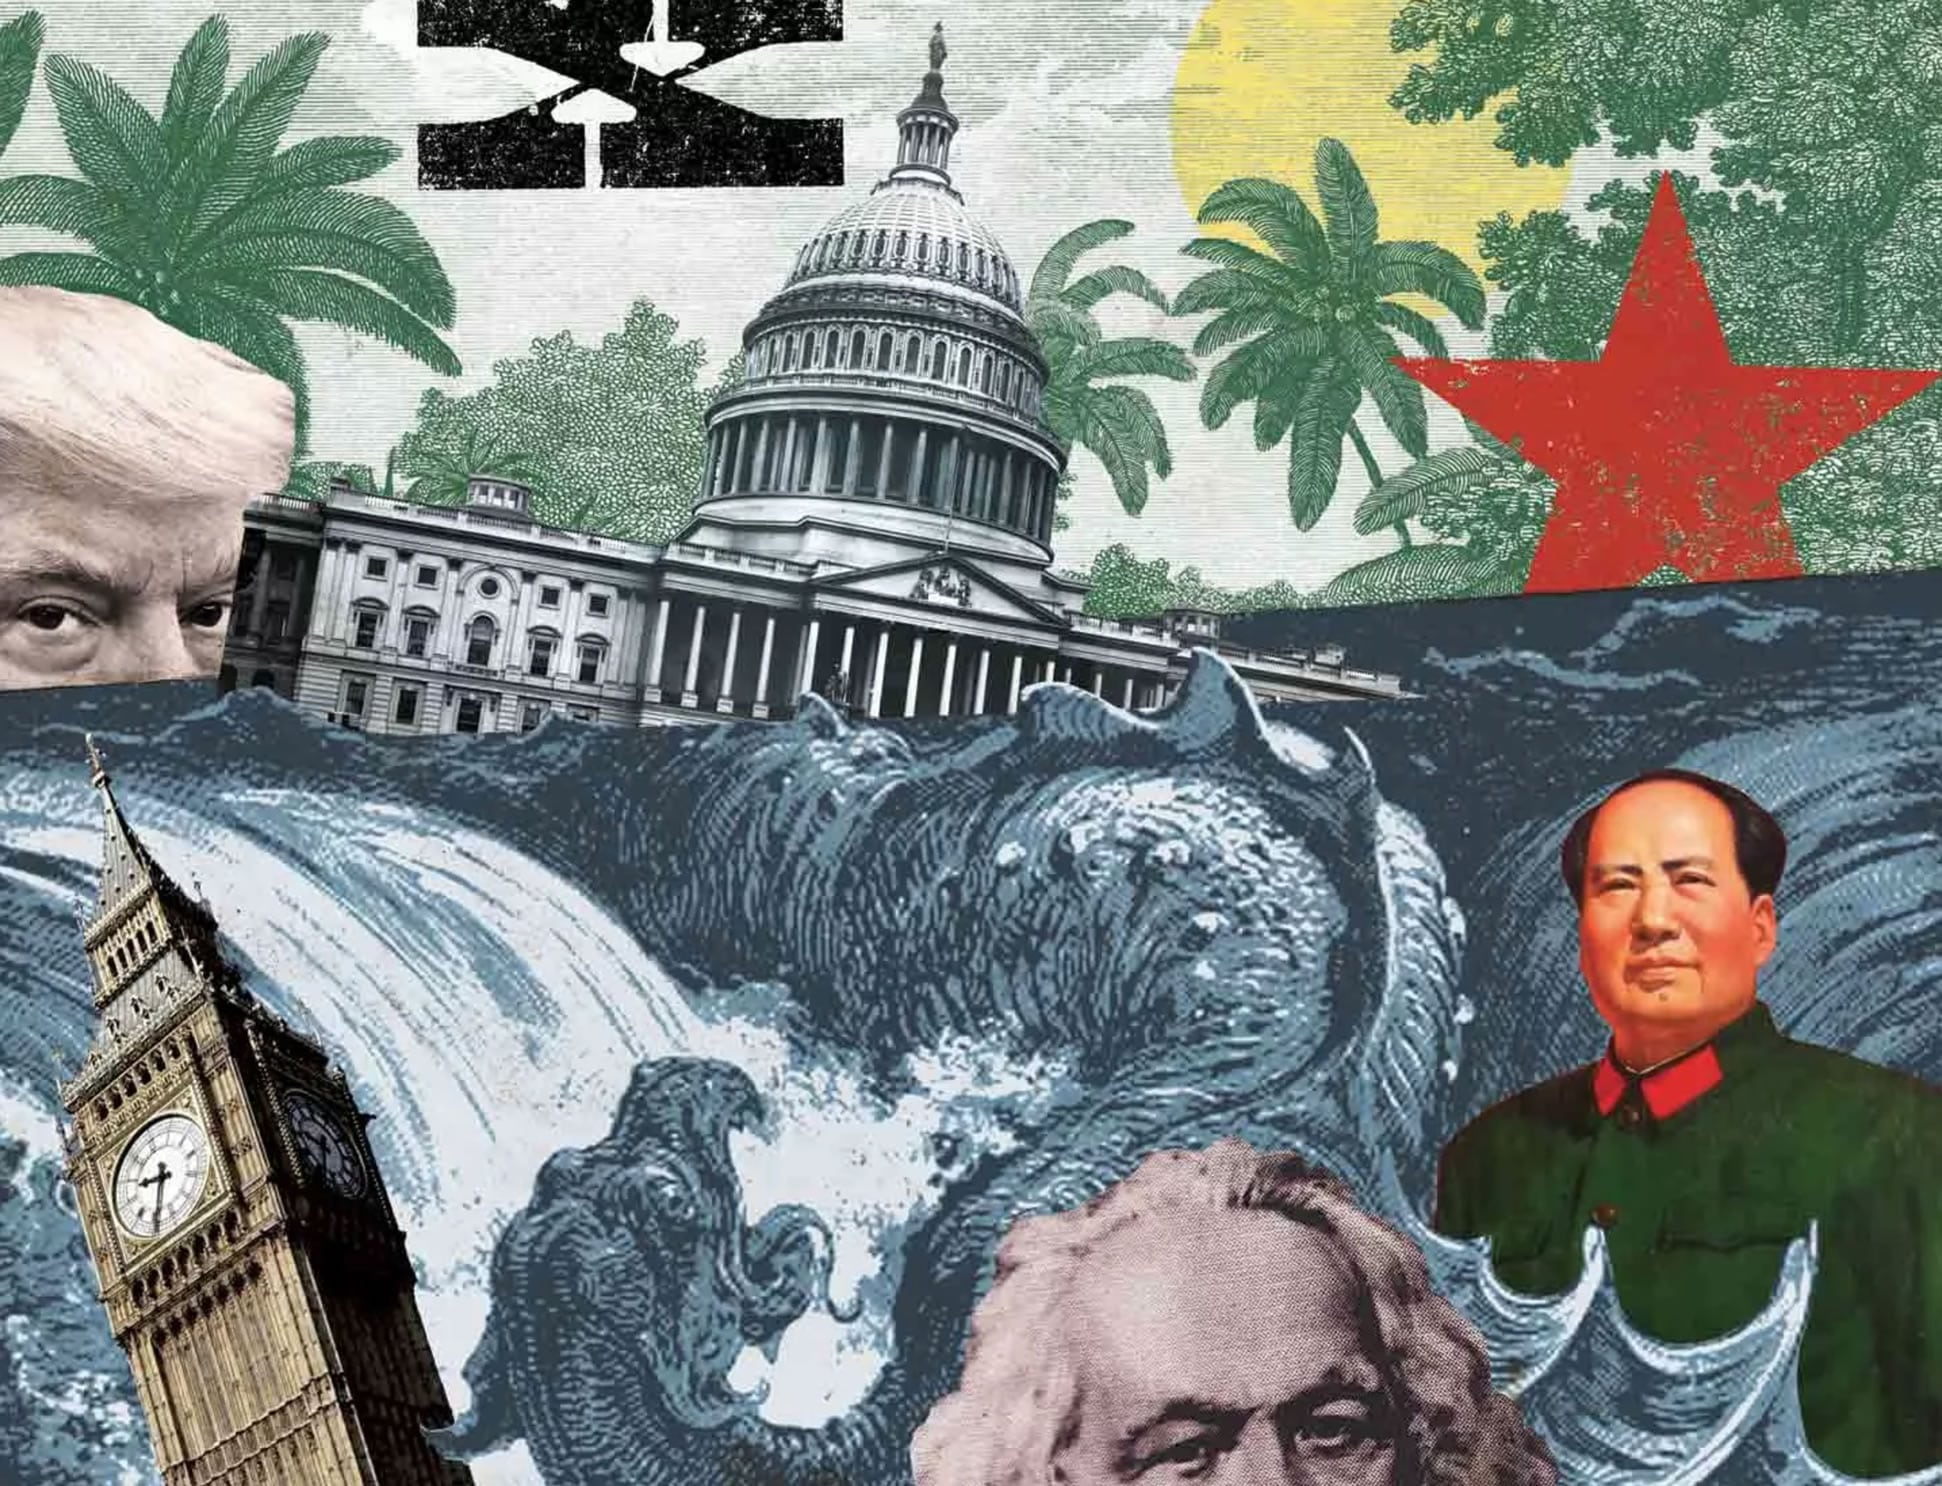 States of Emergency - Imagining a politics for an age of accelerated climate change.